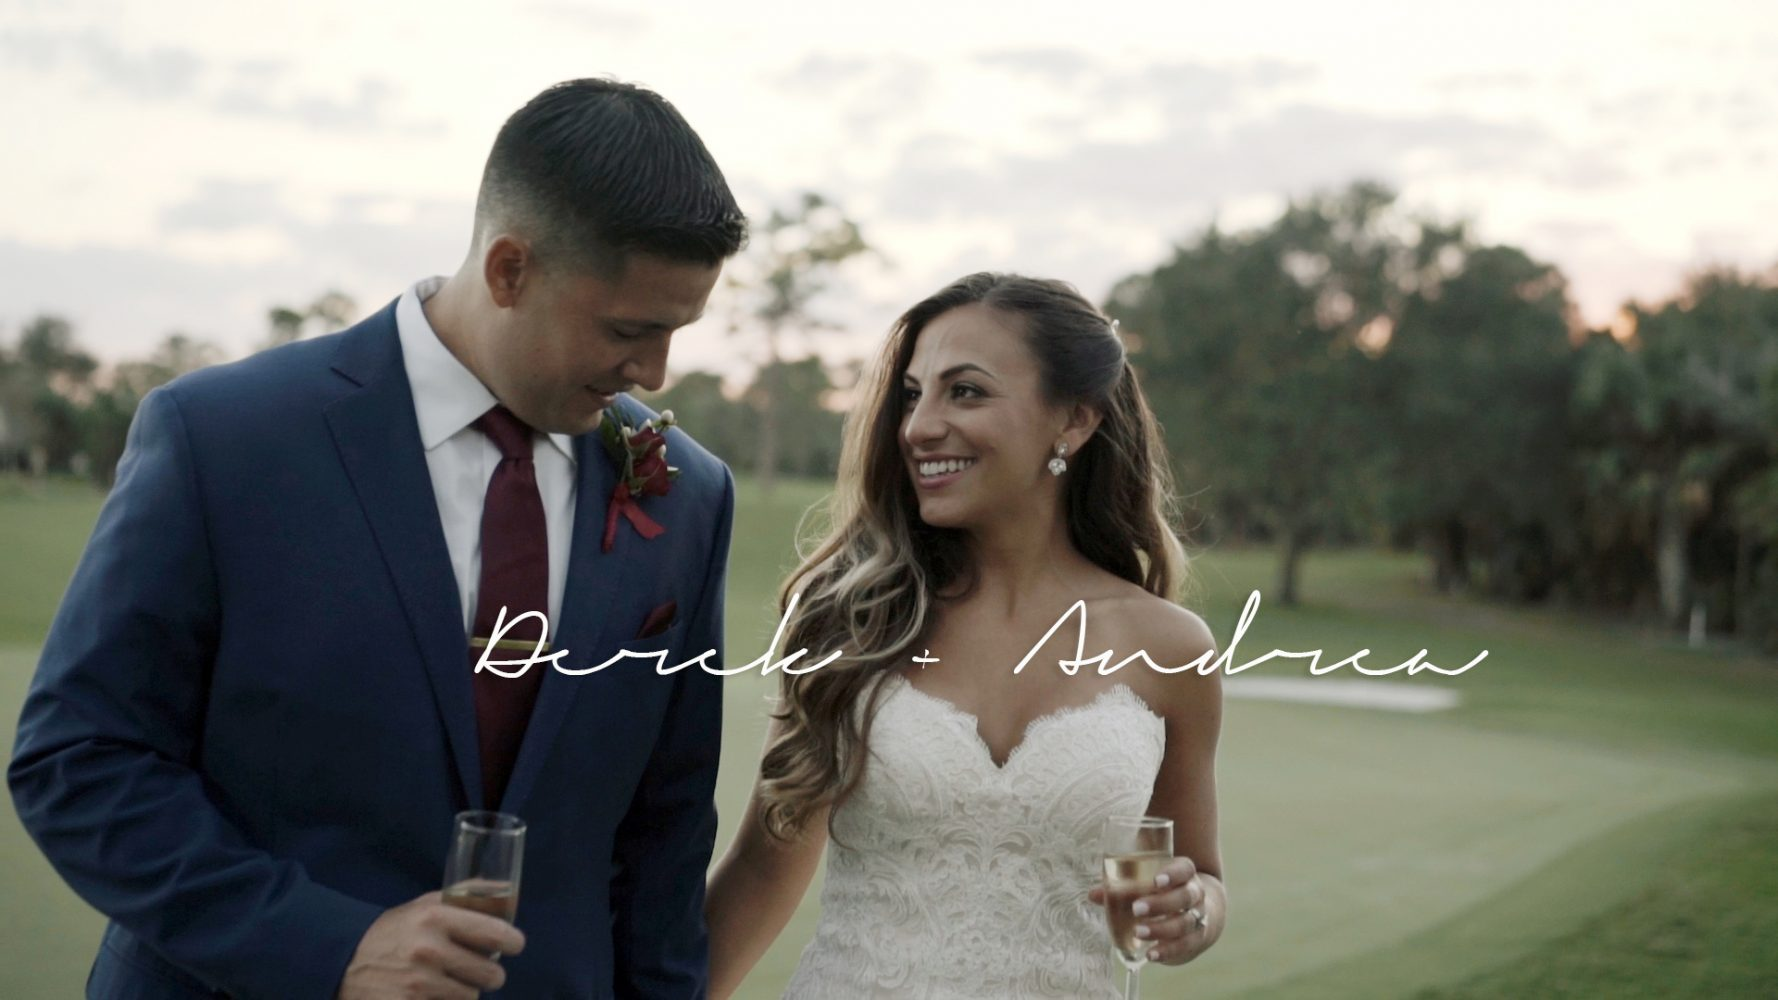 Andrea + Derek | Vero beach, Florida | Bent Pine Golf Club